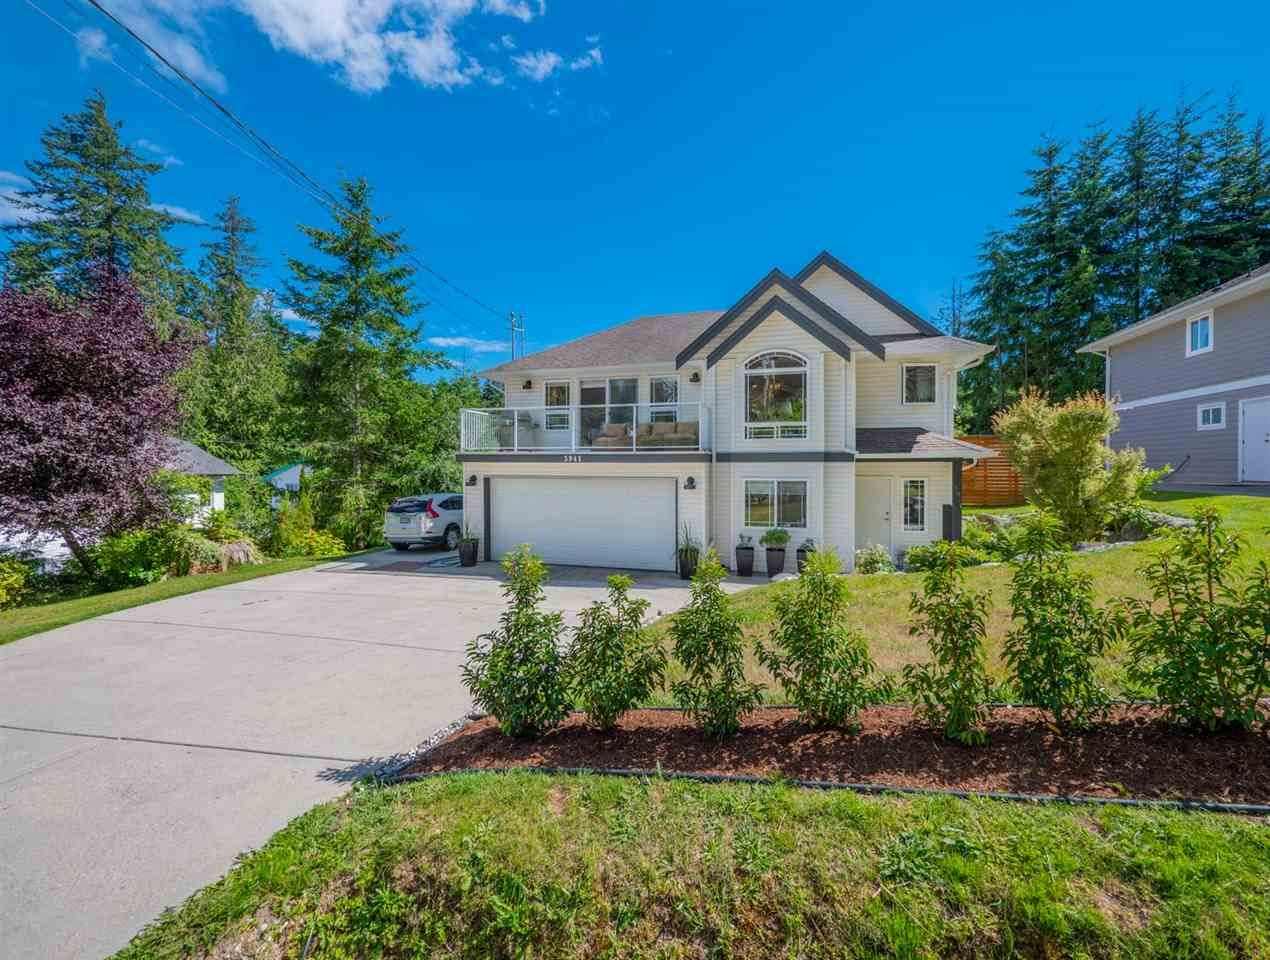 Main Photo: 5941 SHOAL Way in Sechelt: Sechelt District House for sale (Sunshine Coast)  : MLS®# R2286011